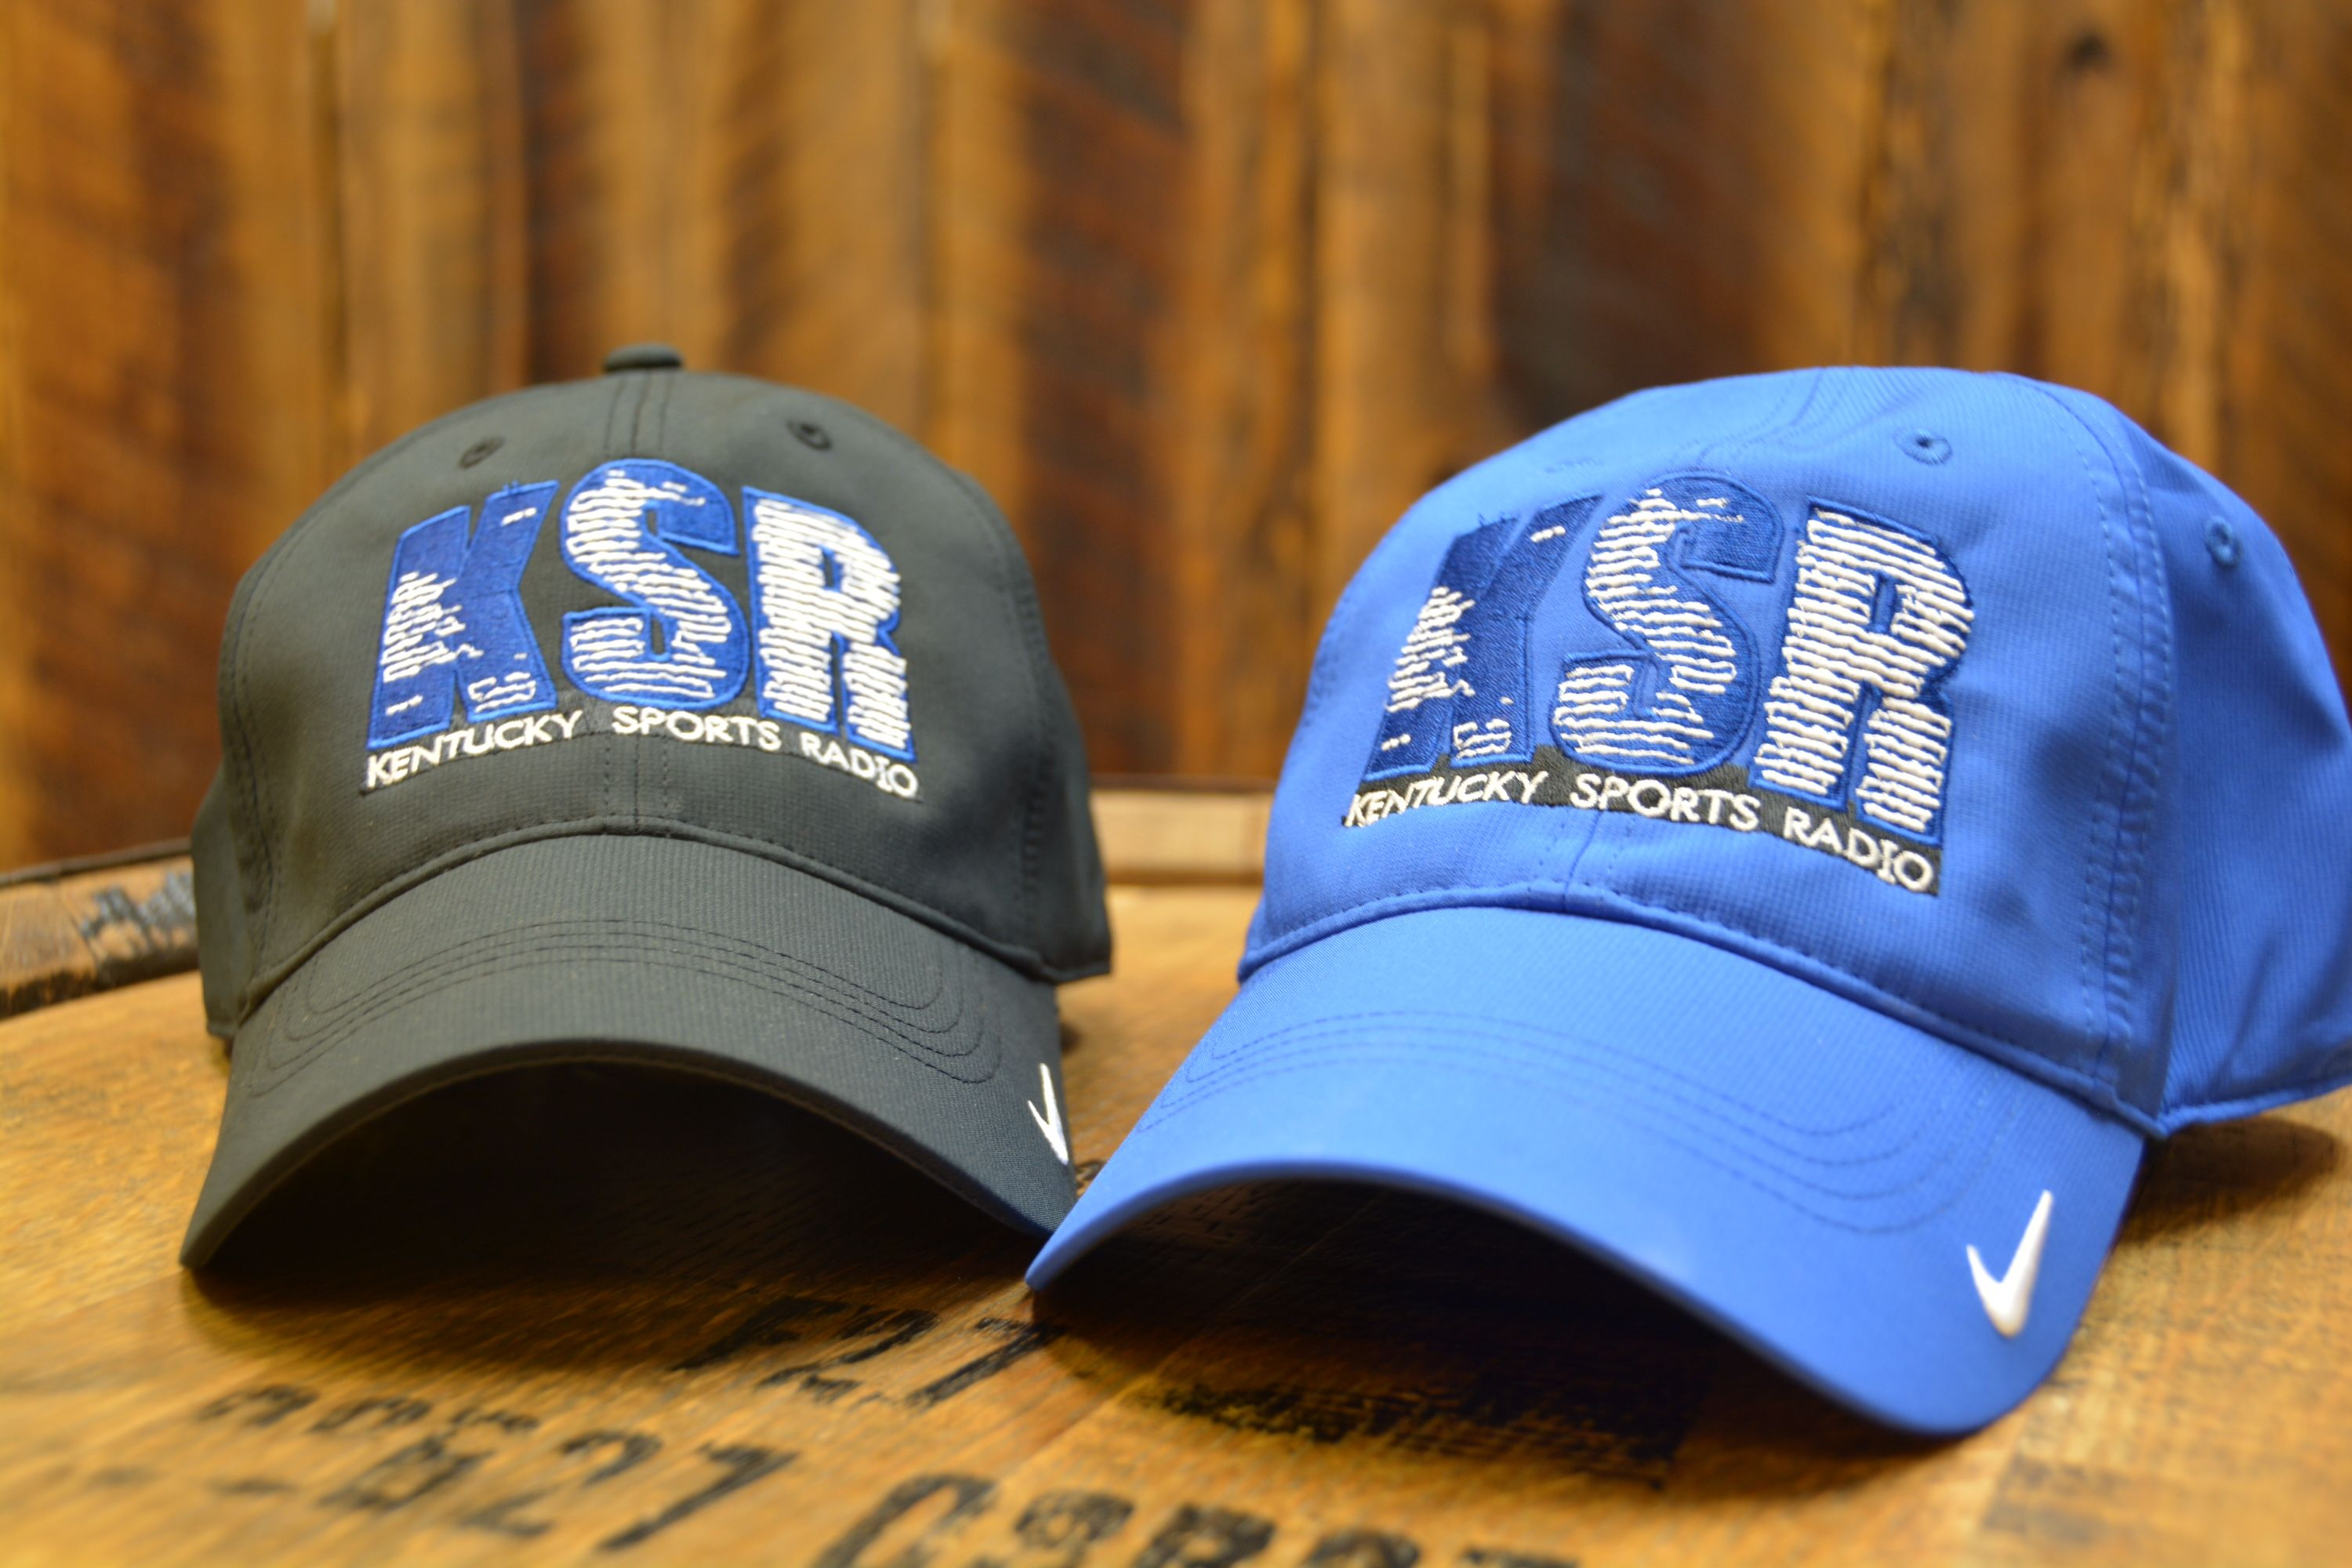 Get new KSR hats and other merchandise here!!